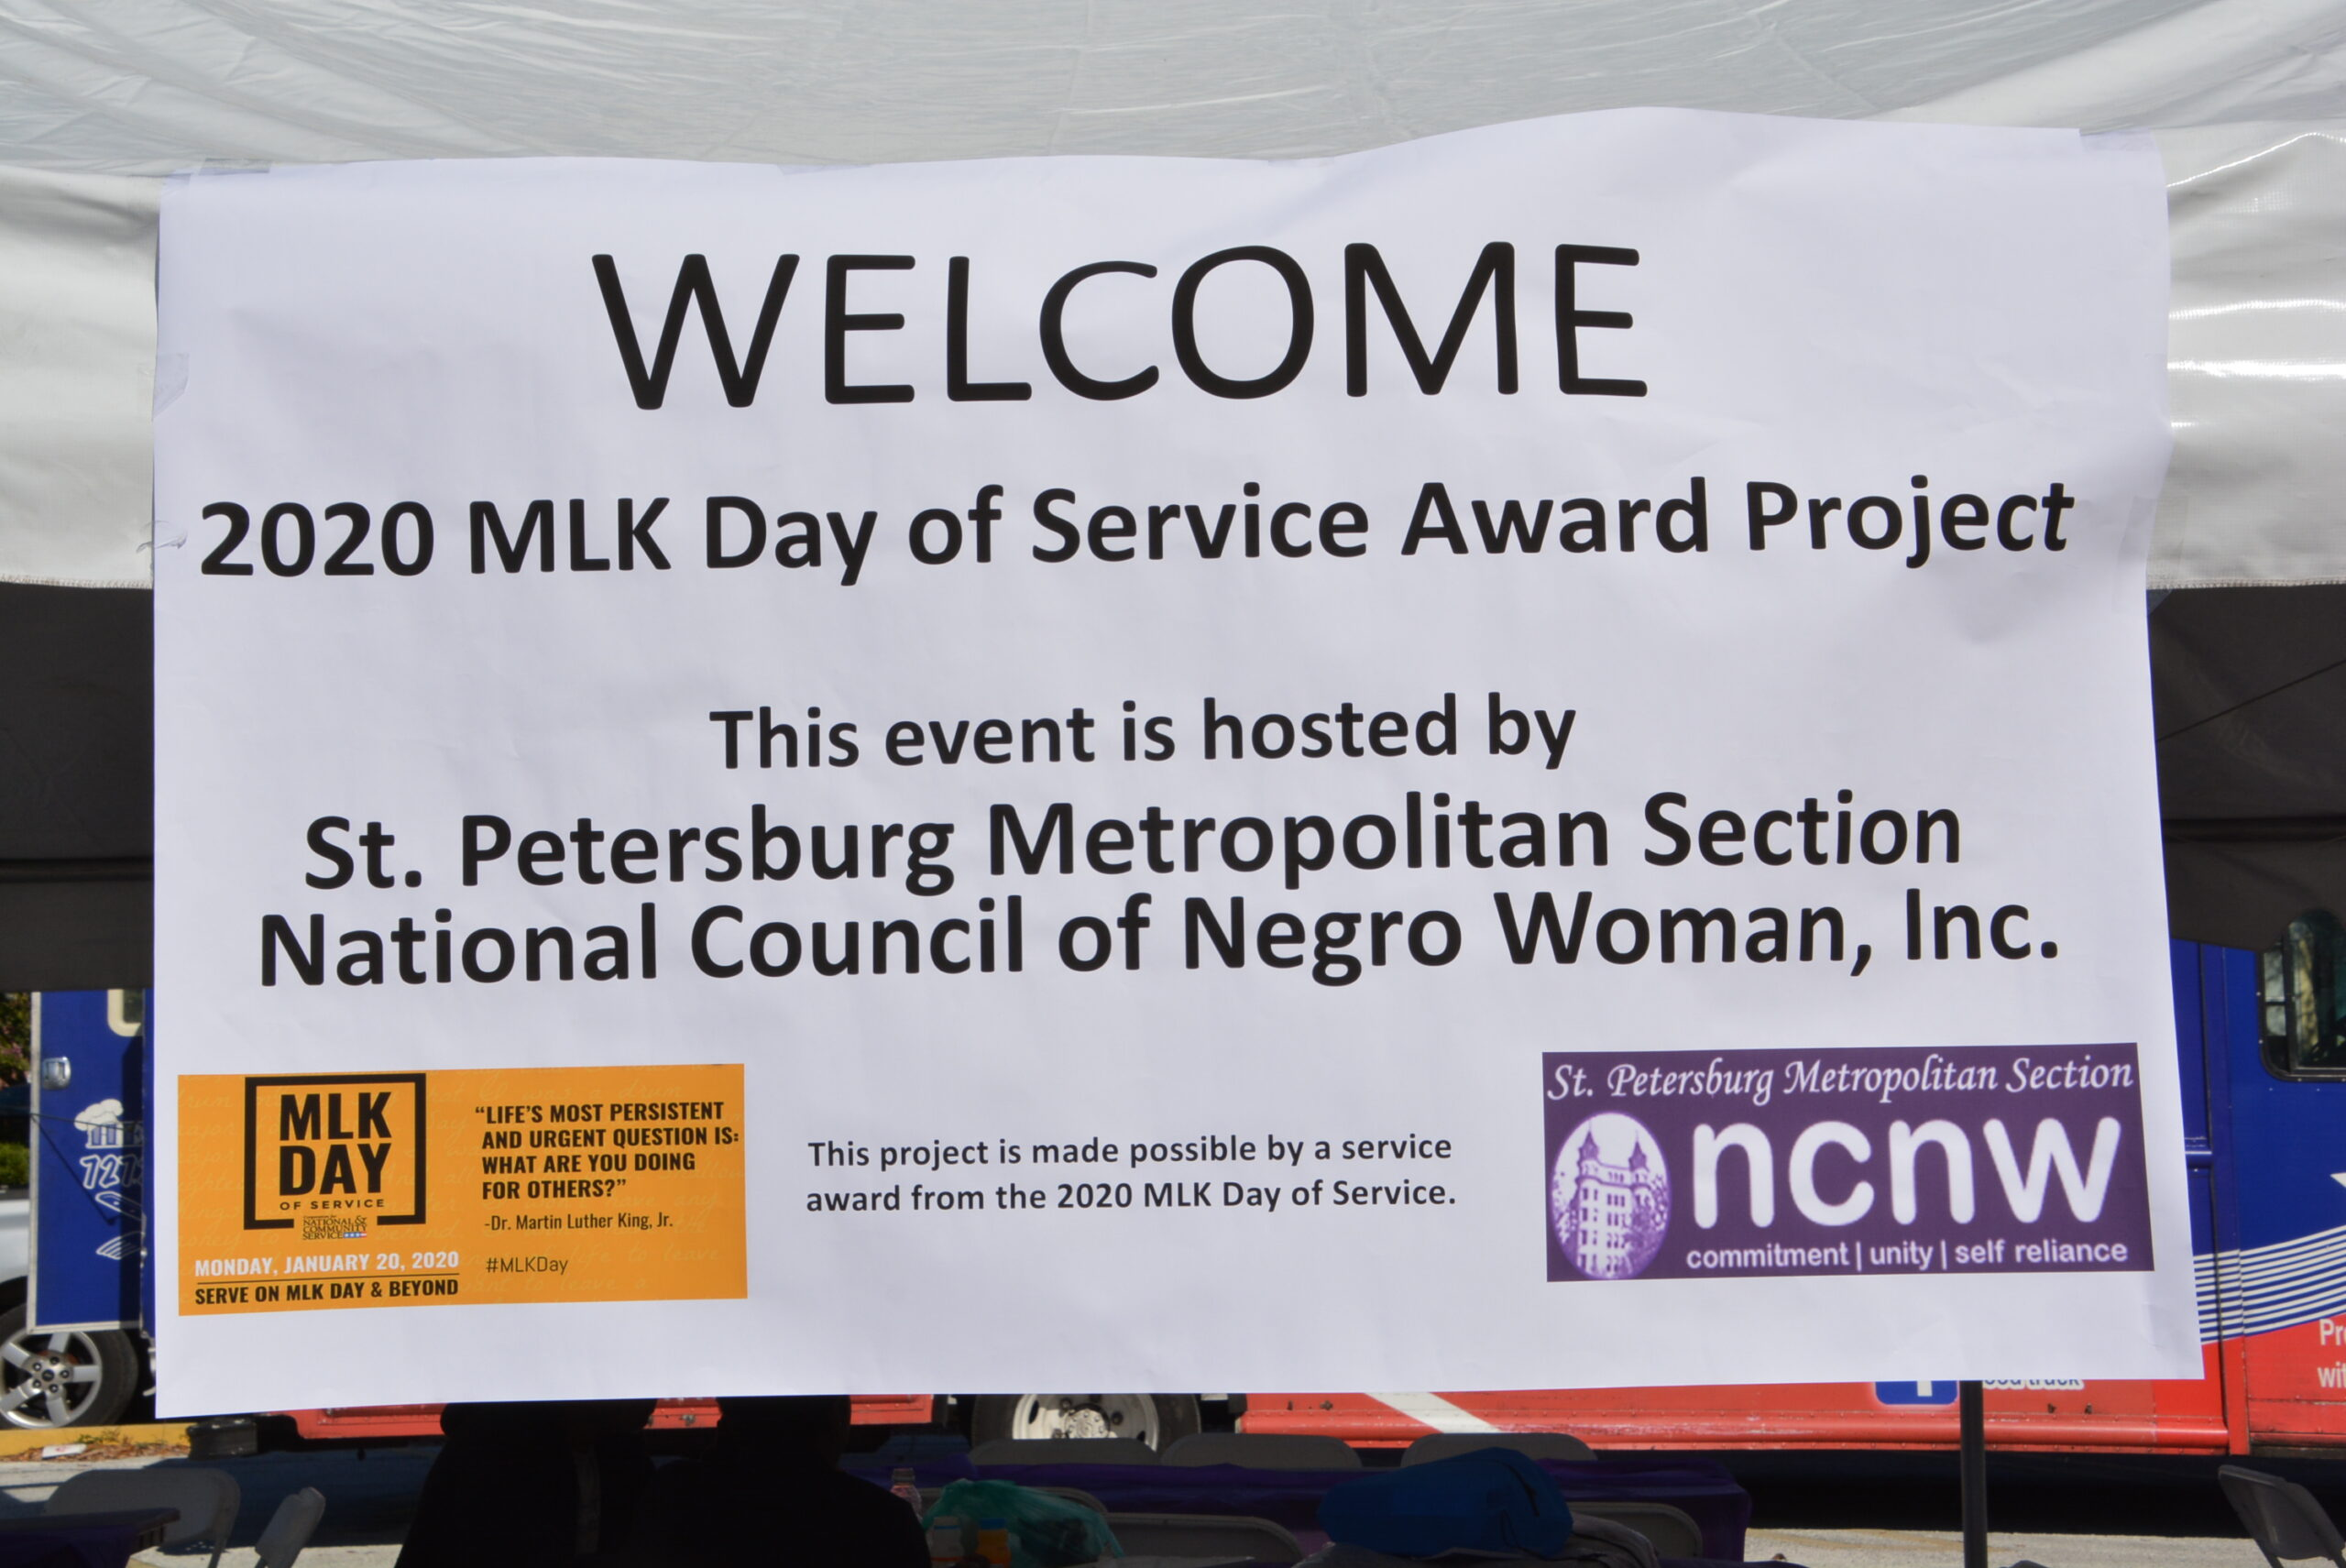 012520_NCNW_Event-Day-welcome-banner